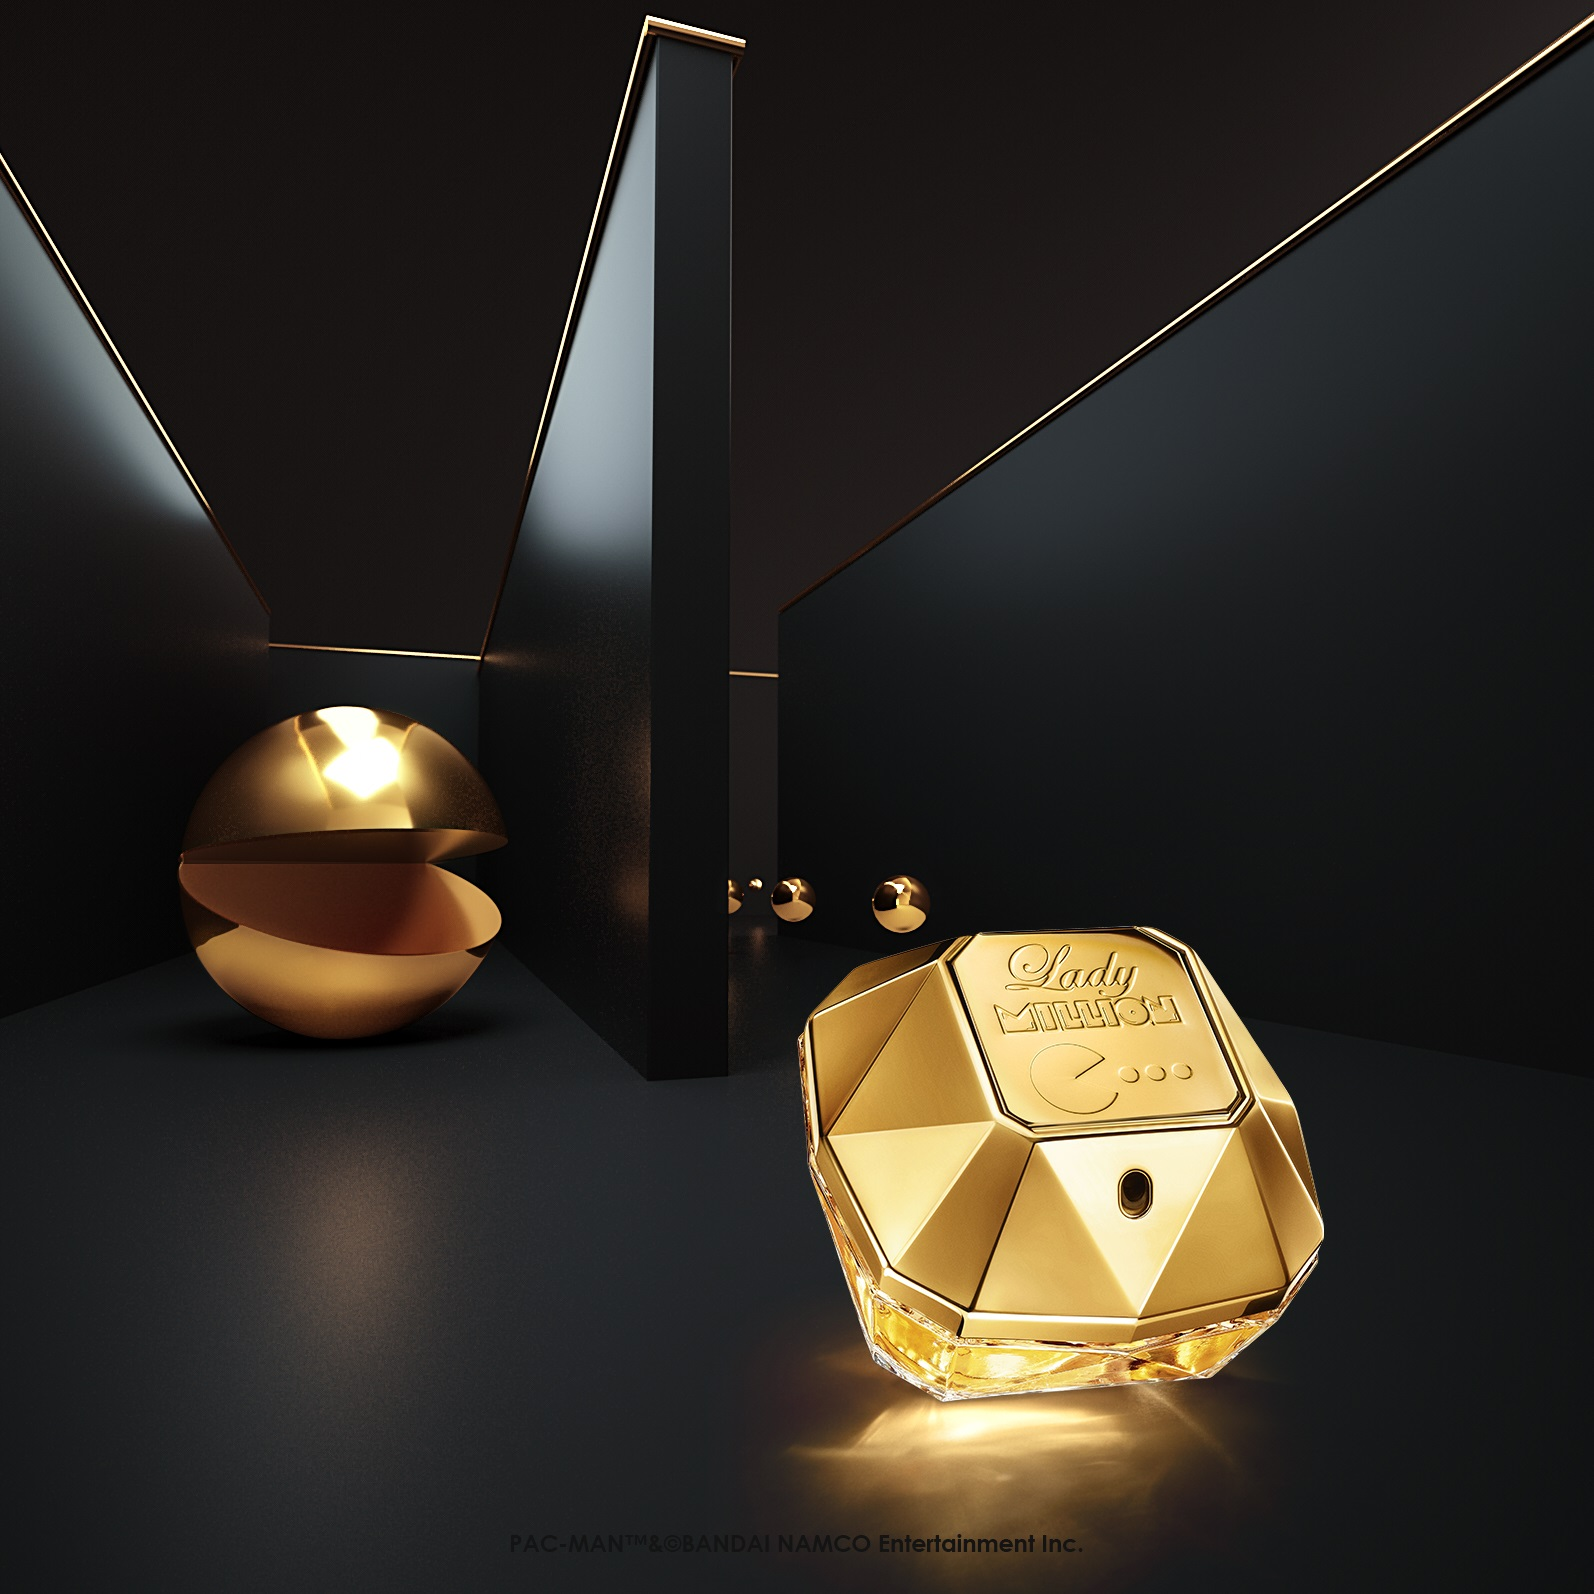 New! Paco Rabanne 1 MILLION x PAC-MAN ~ New Fragrances